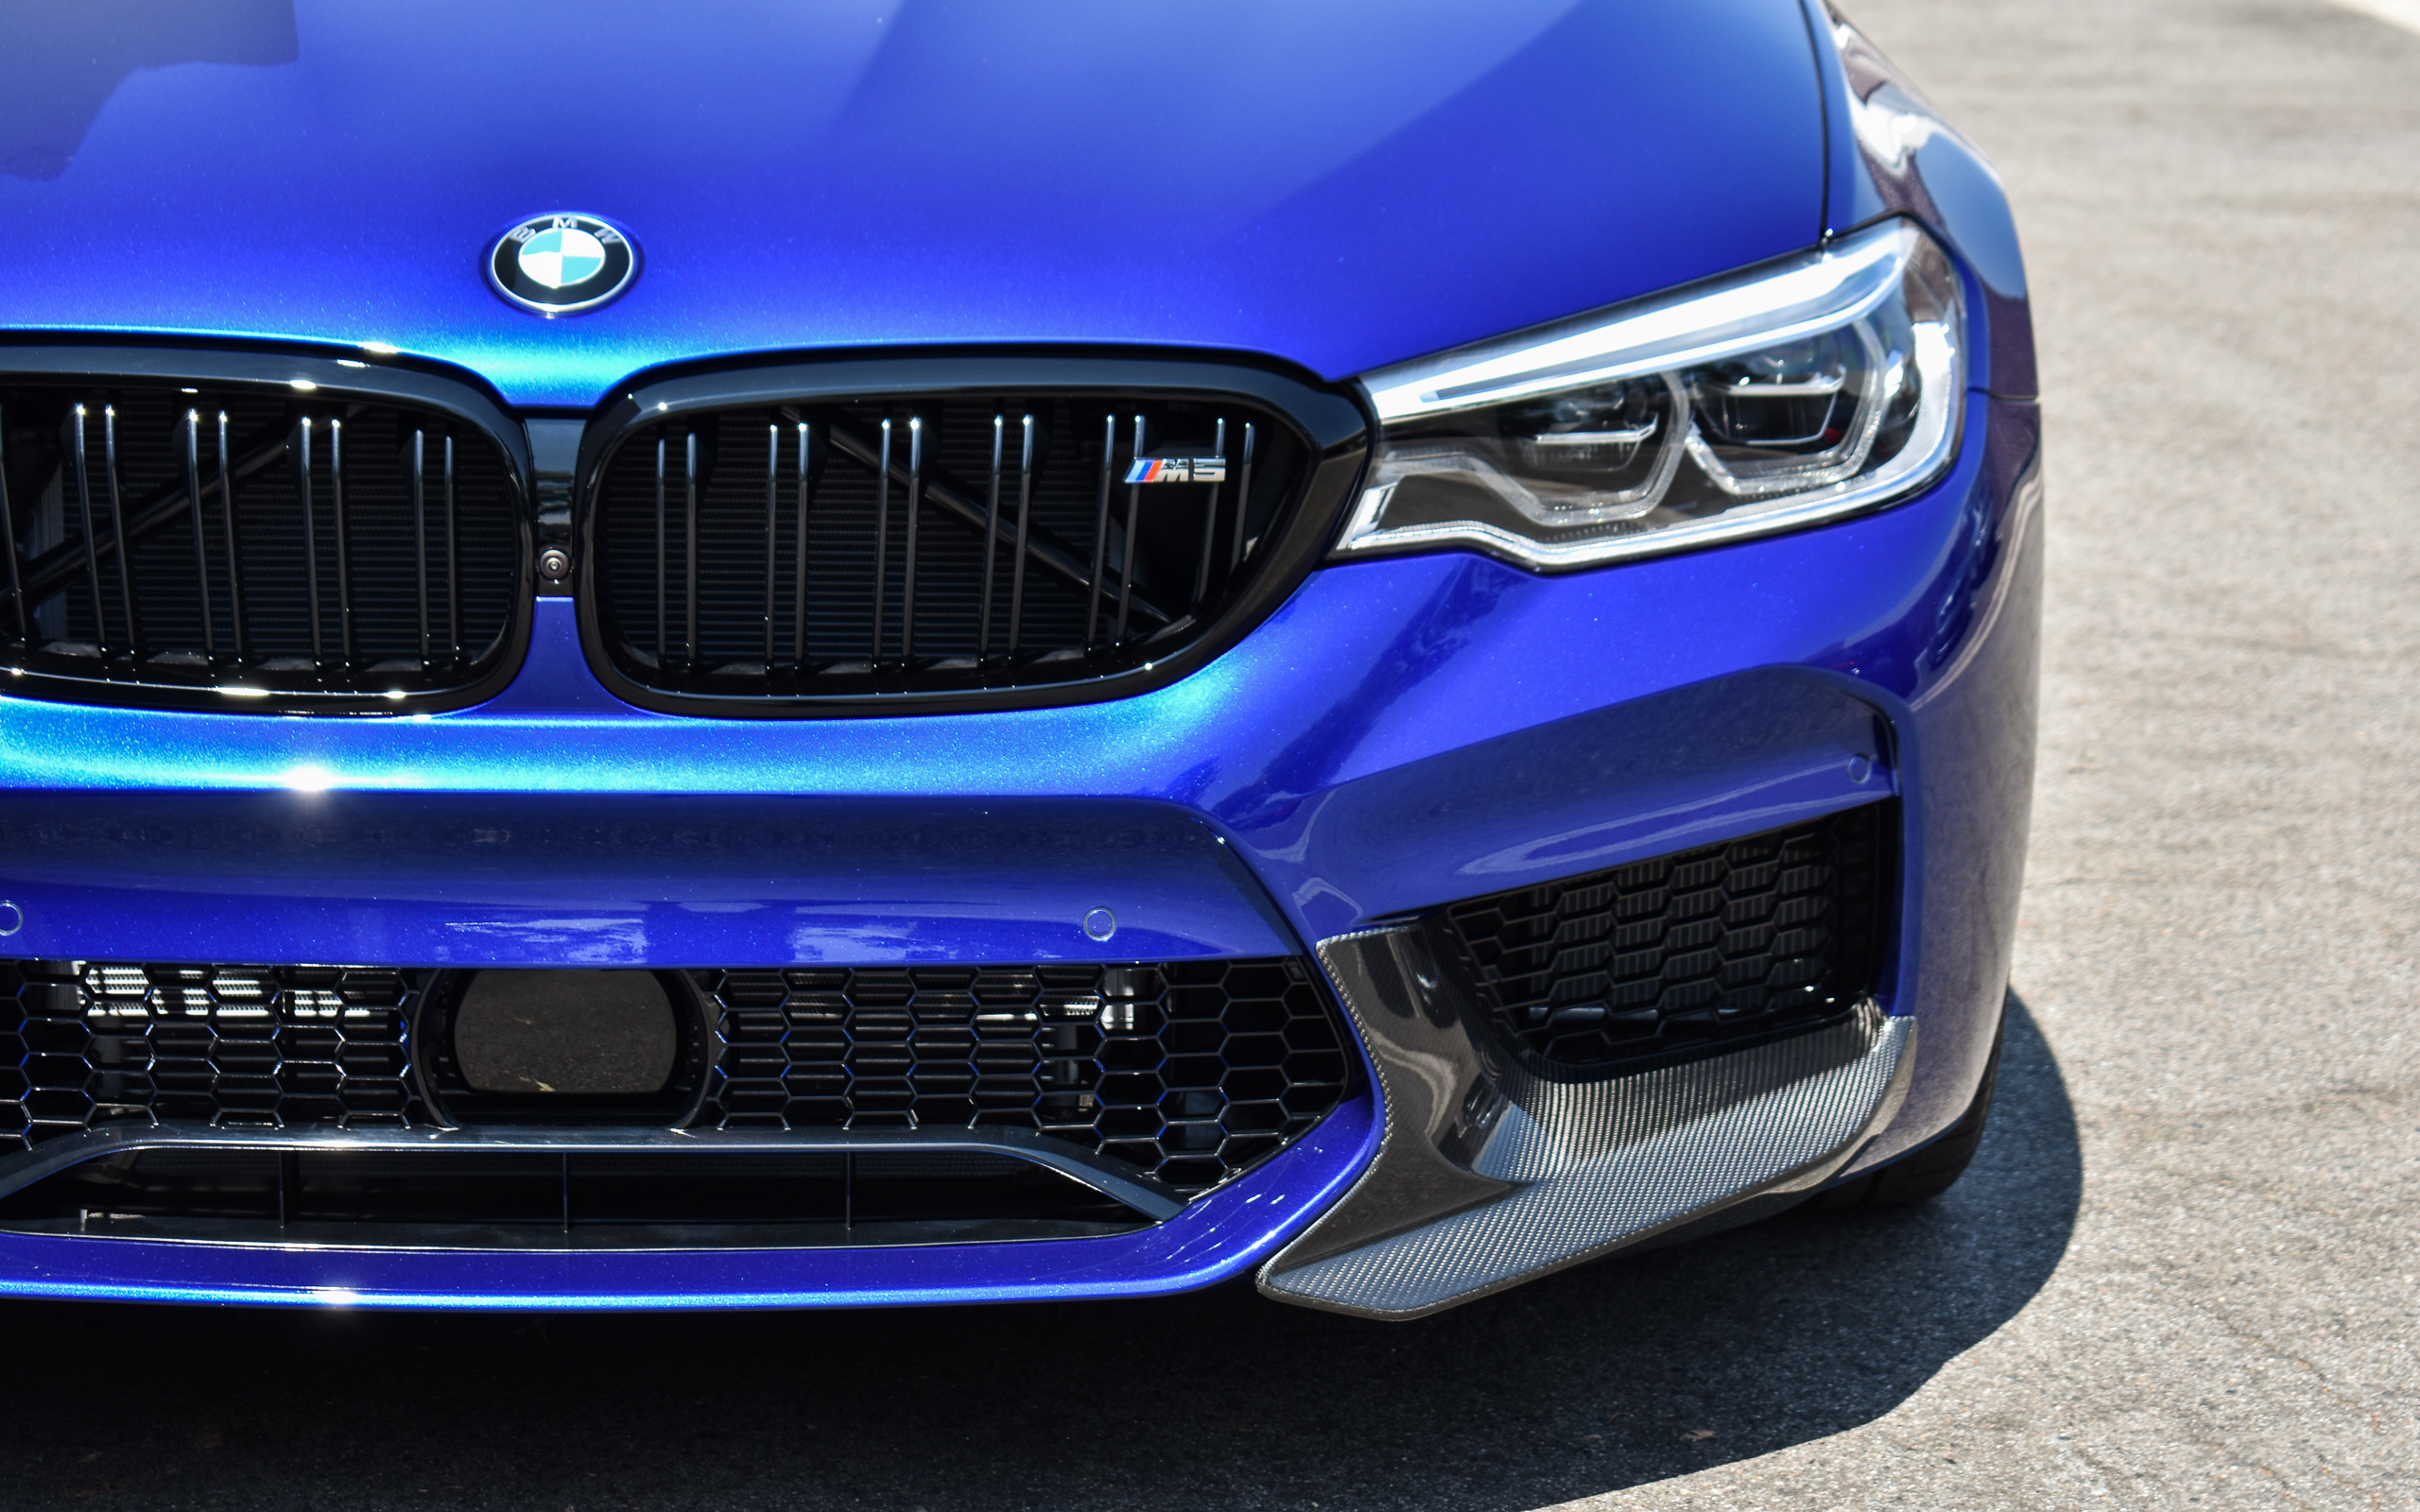 2018 Marina Bay Blue F90 M5 - BMW M Performance